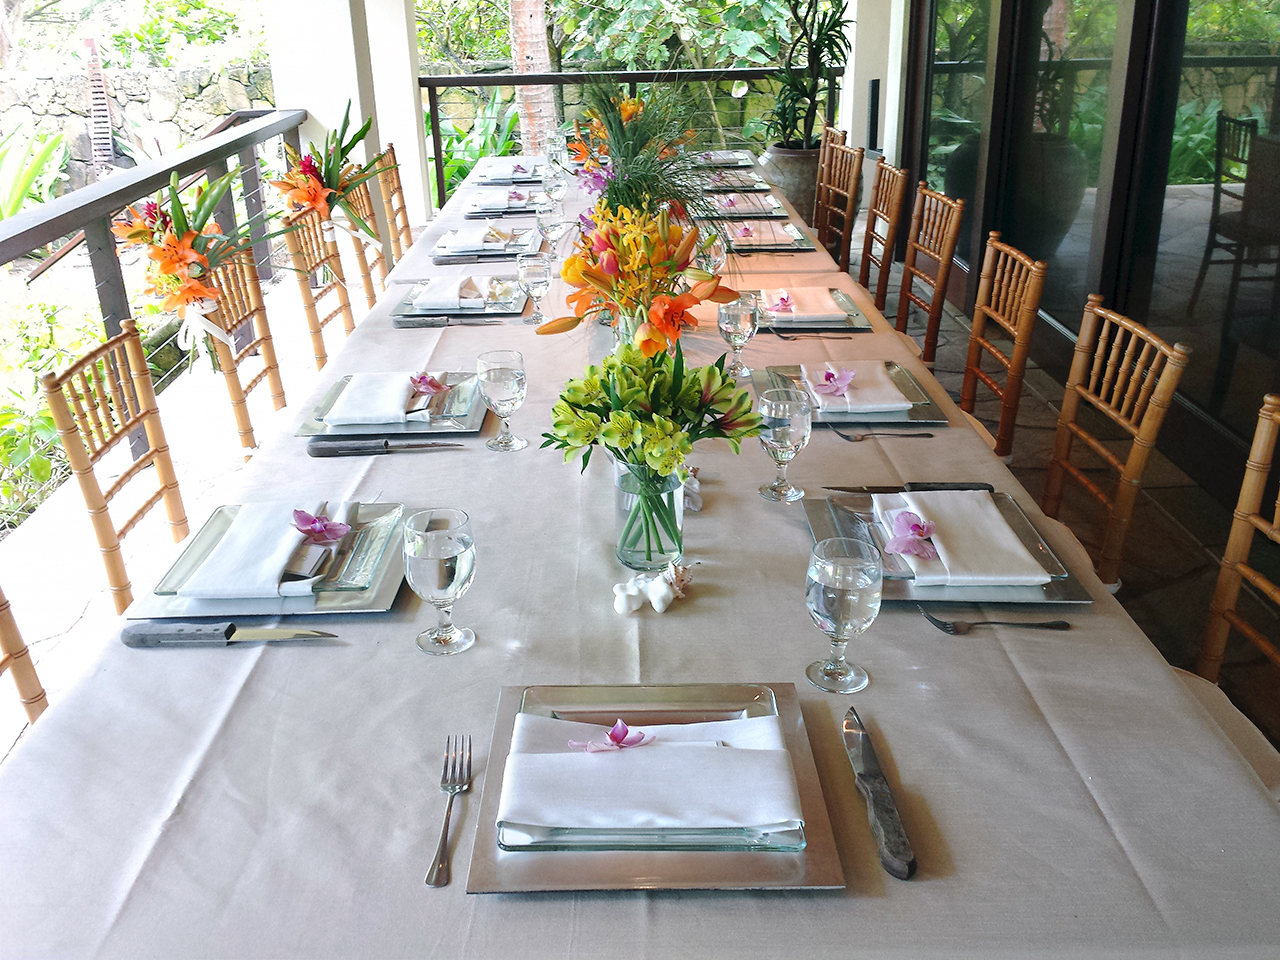 Filipino table setting - Simpleset Tablesetting